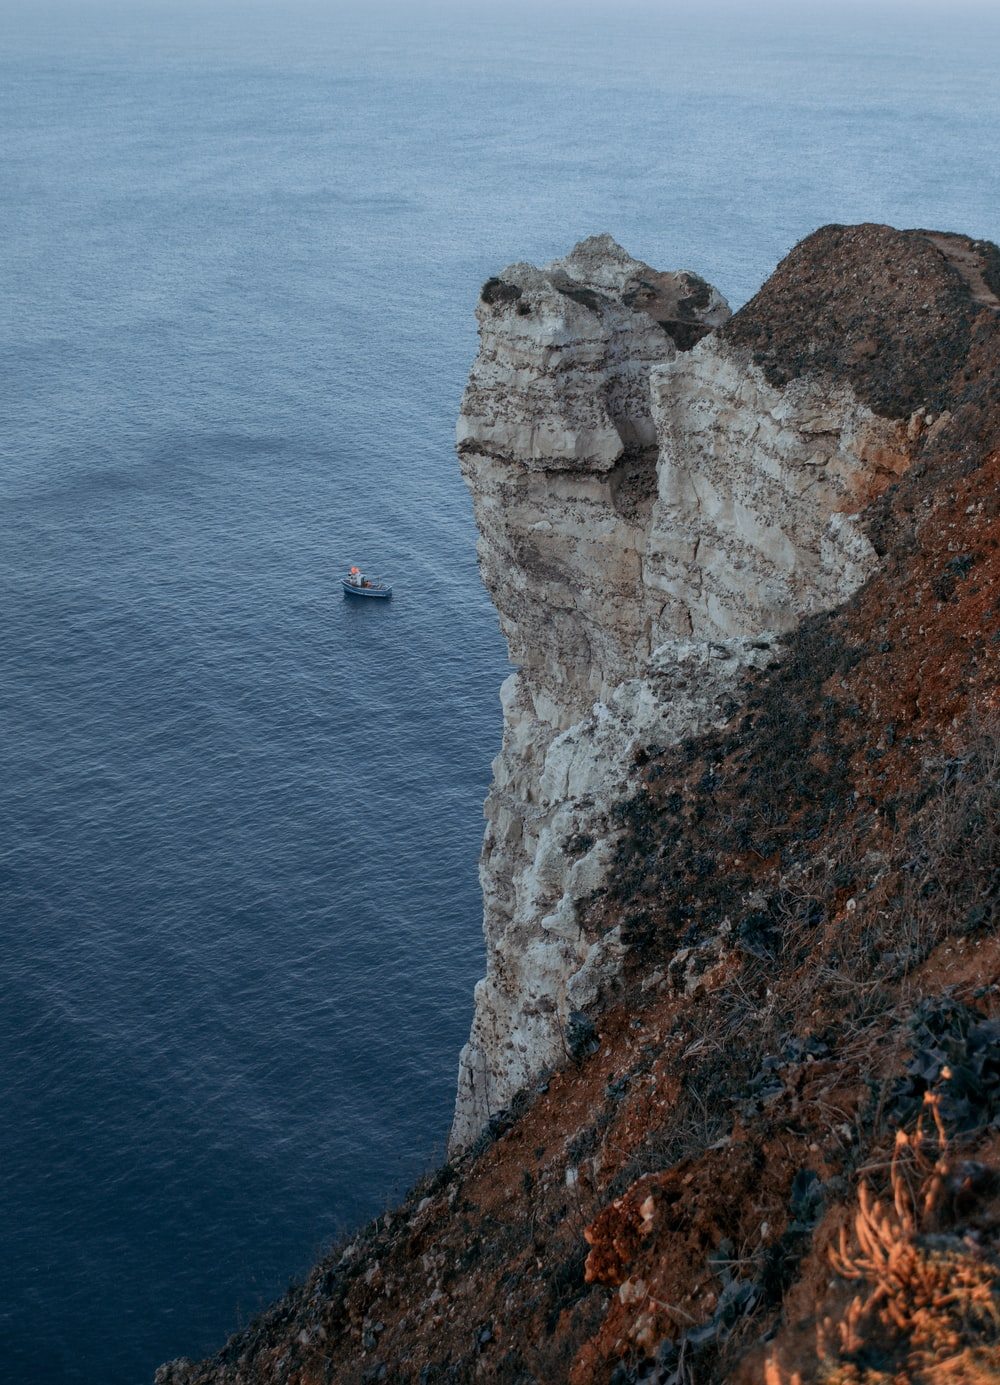 aerial photography of cliff near body of water during daytime